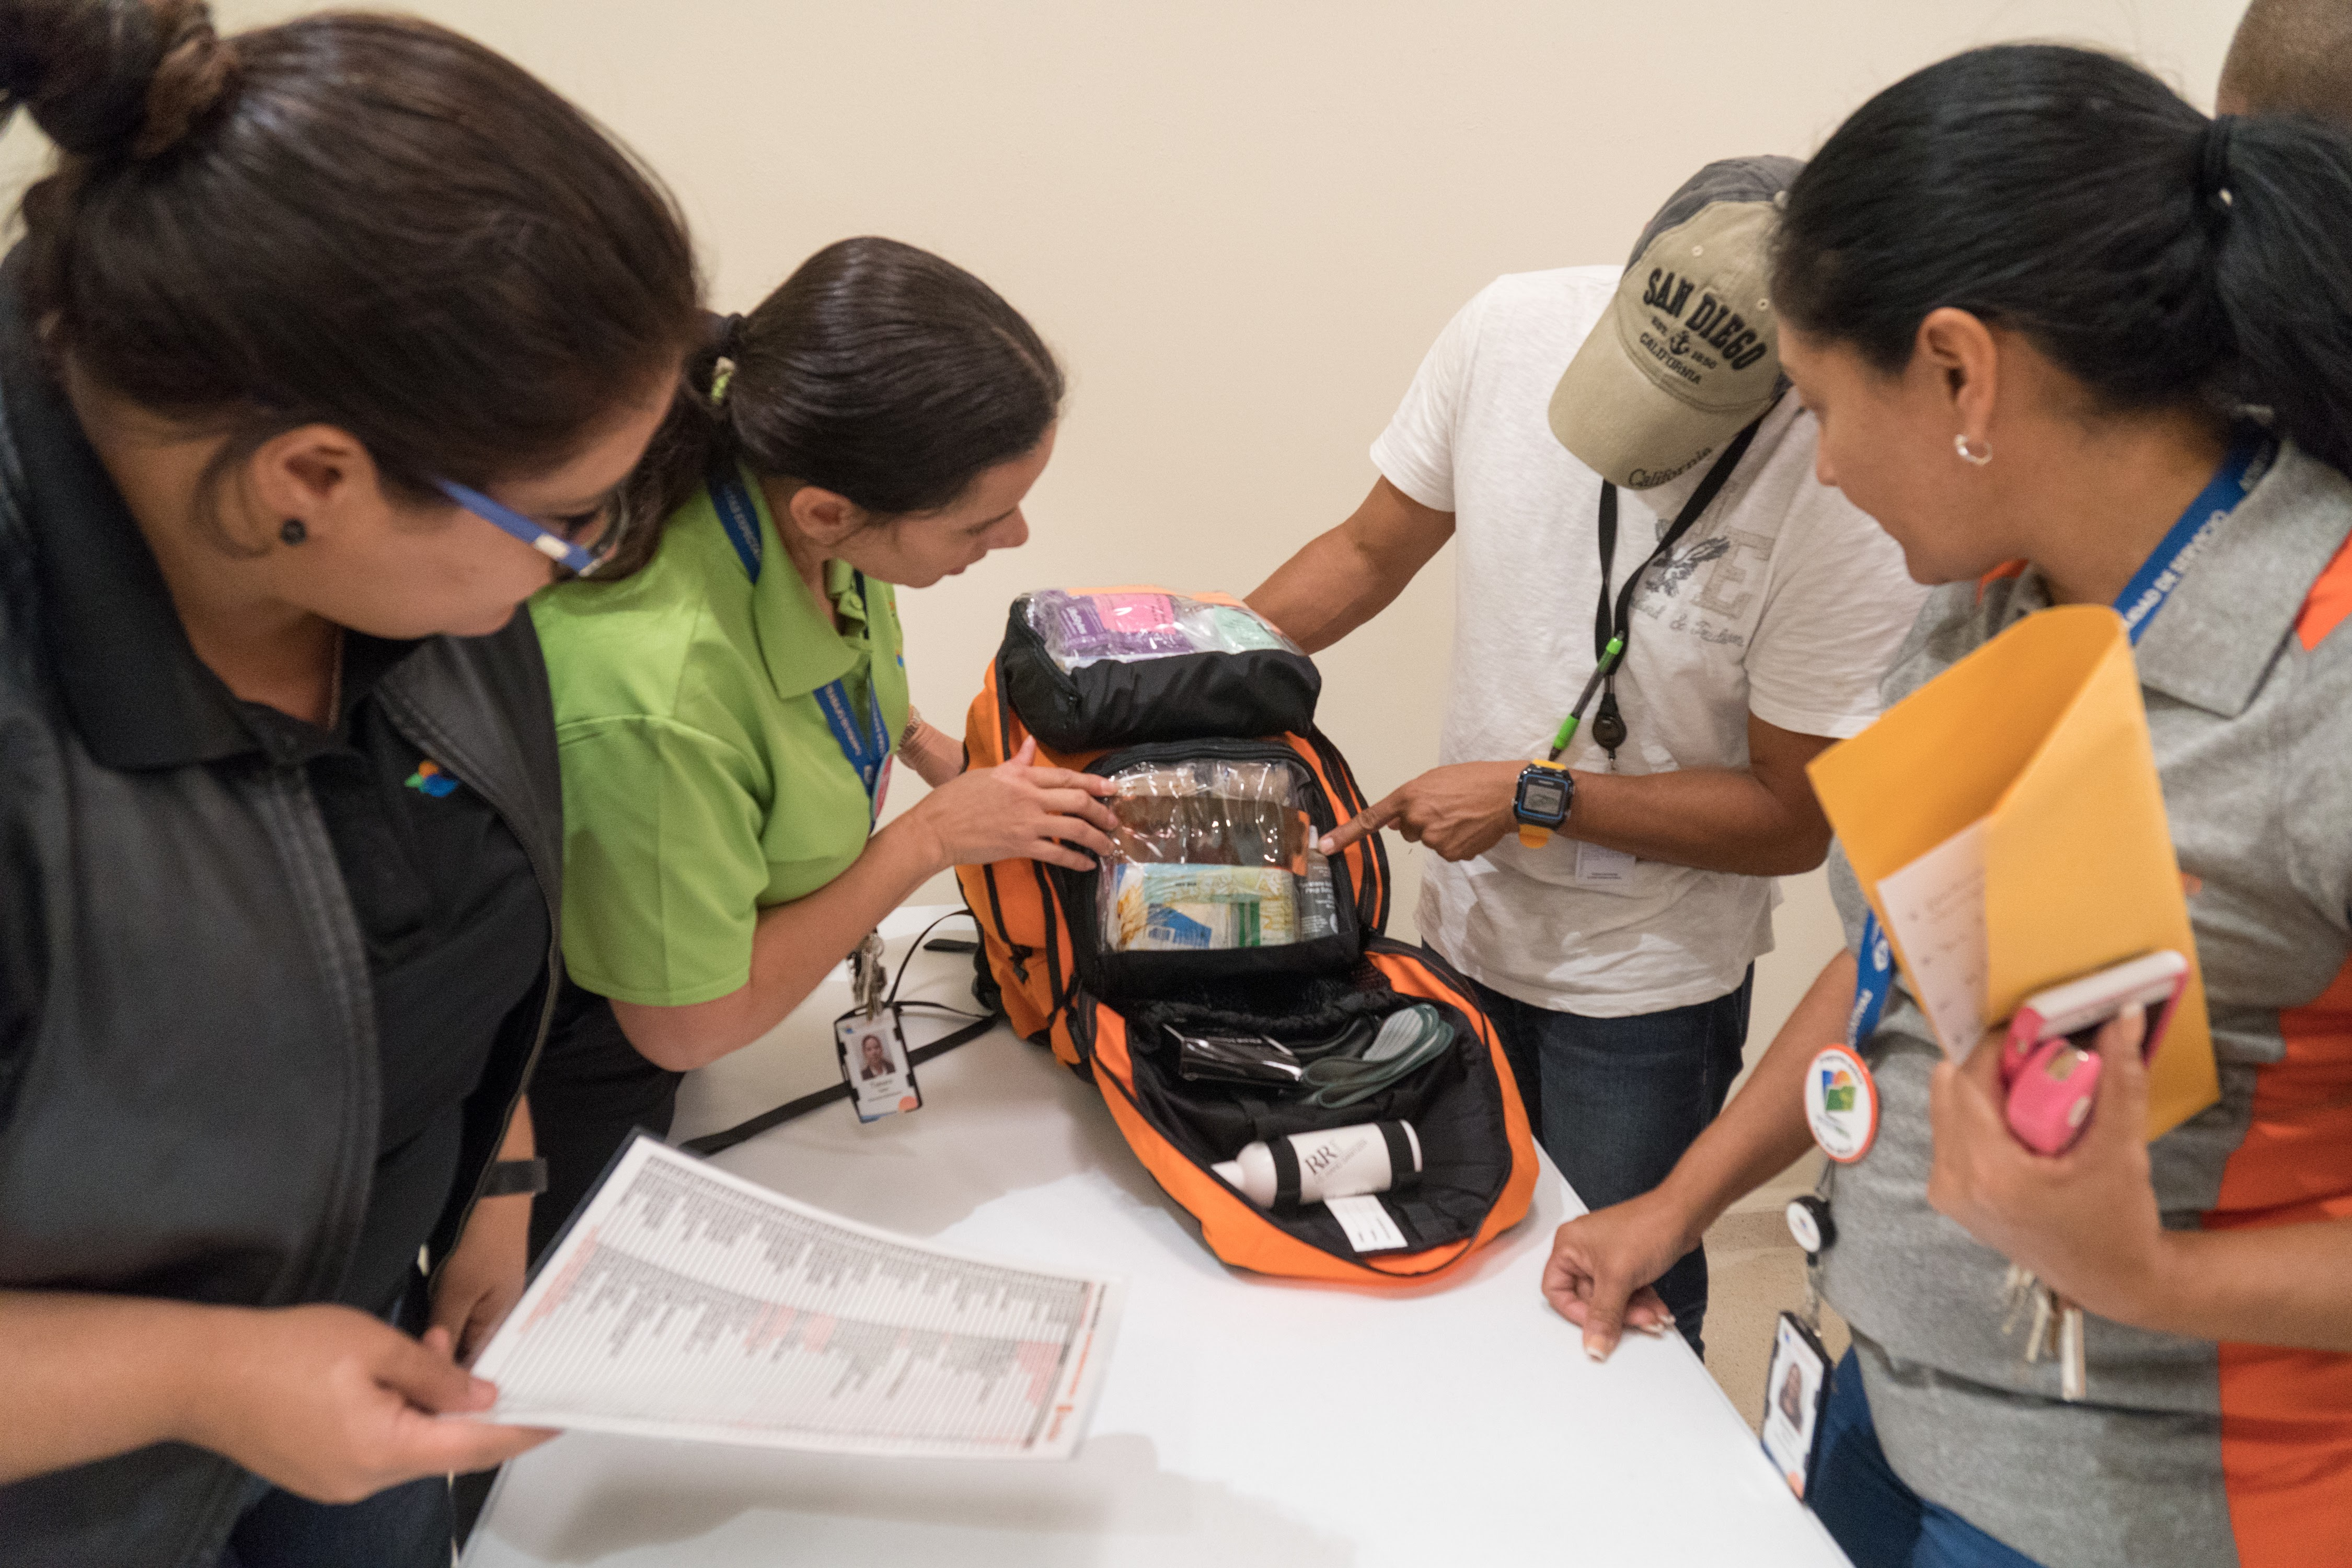 OCTOBER 6, 2017--RINCON, PUERTO RICO ---